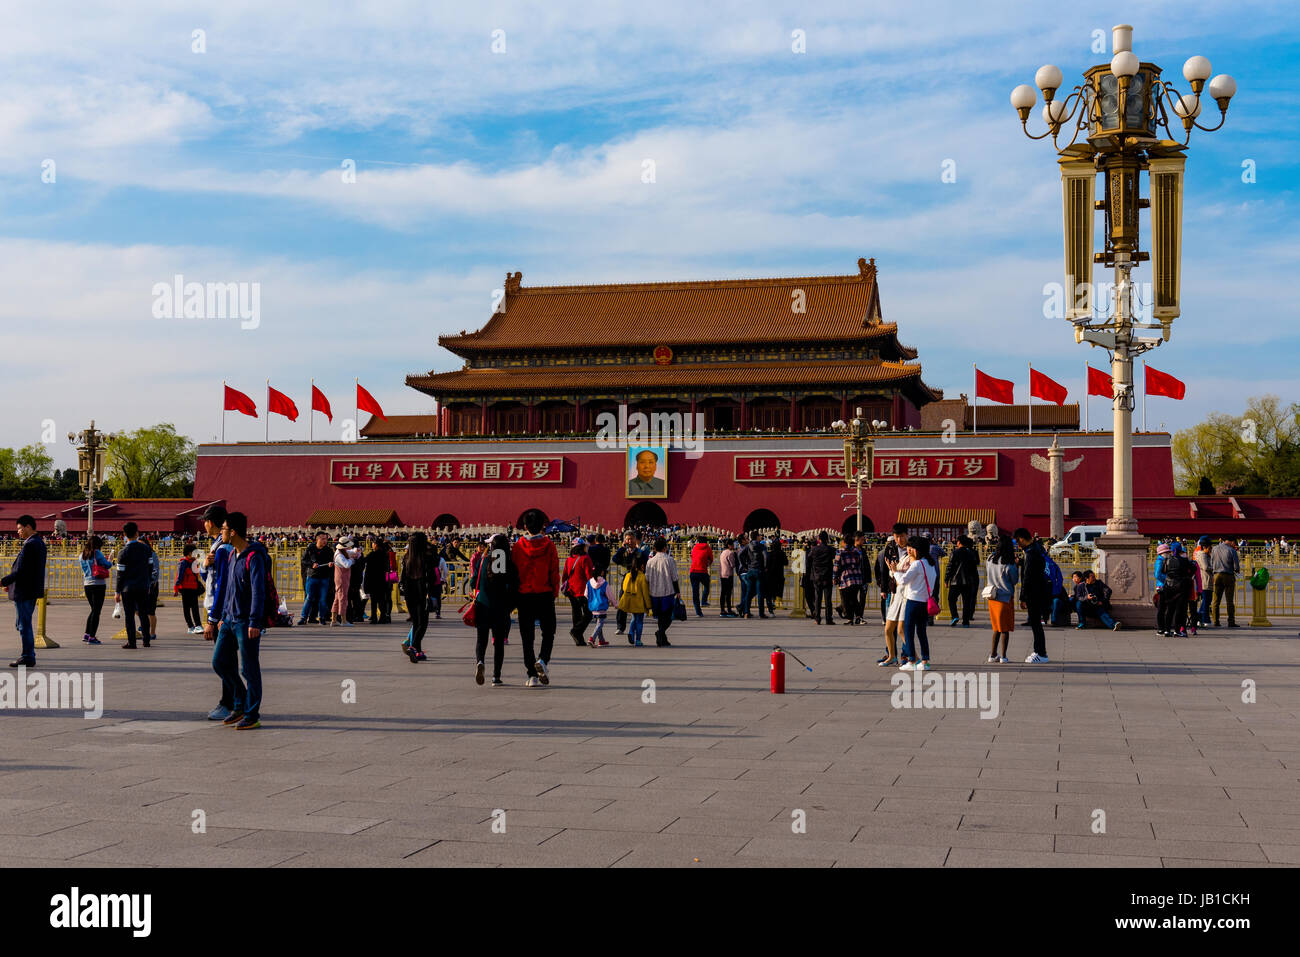 Tourists stroll around Tiananmen Square where a portrait of Mao is prominently displayed - Stock Image